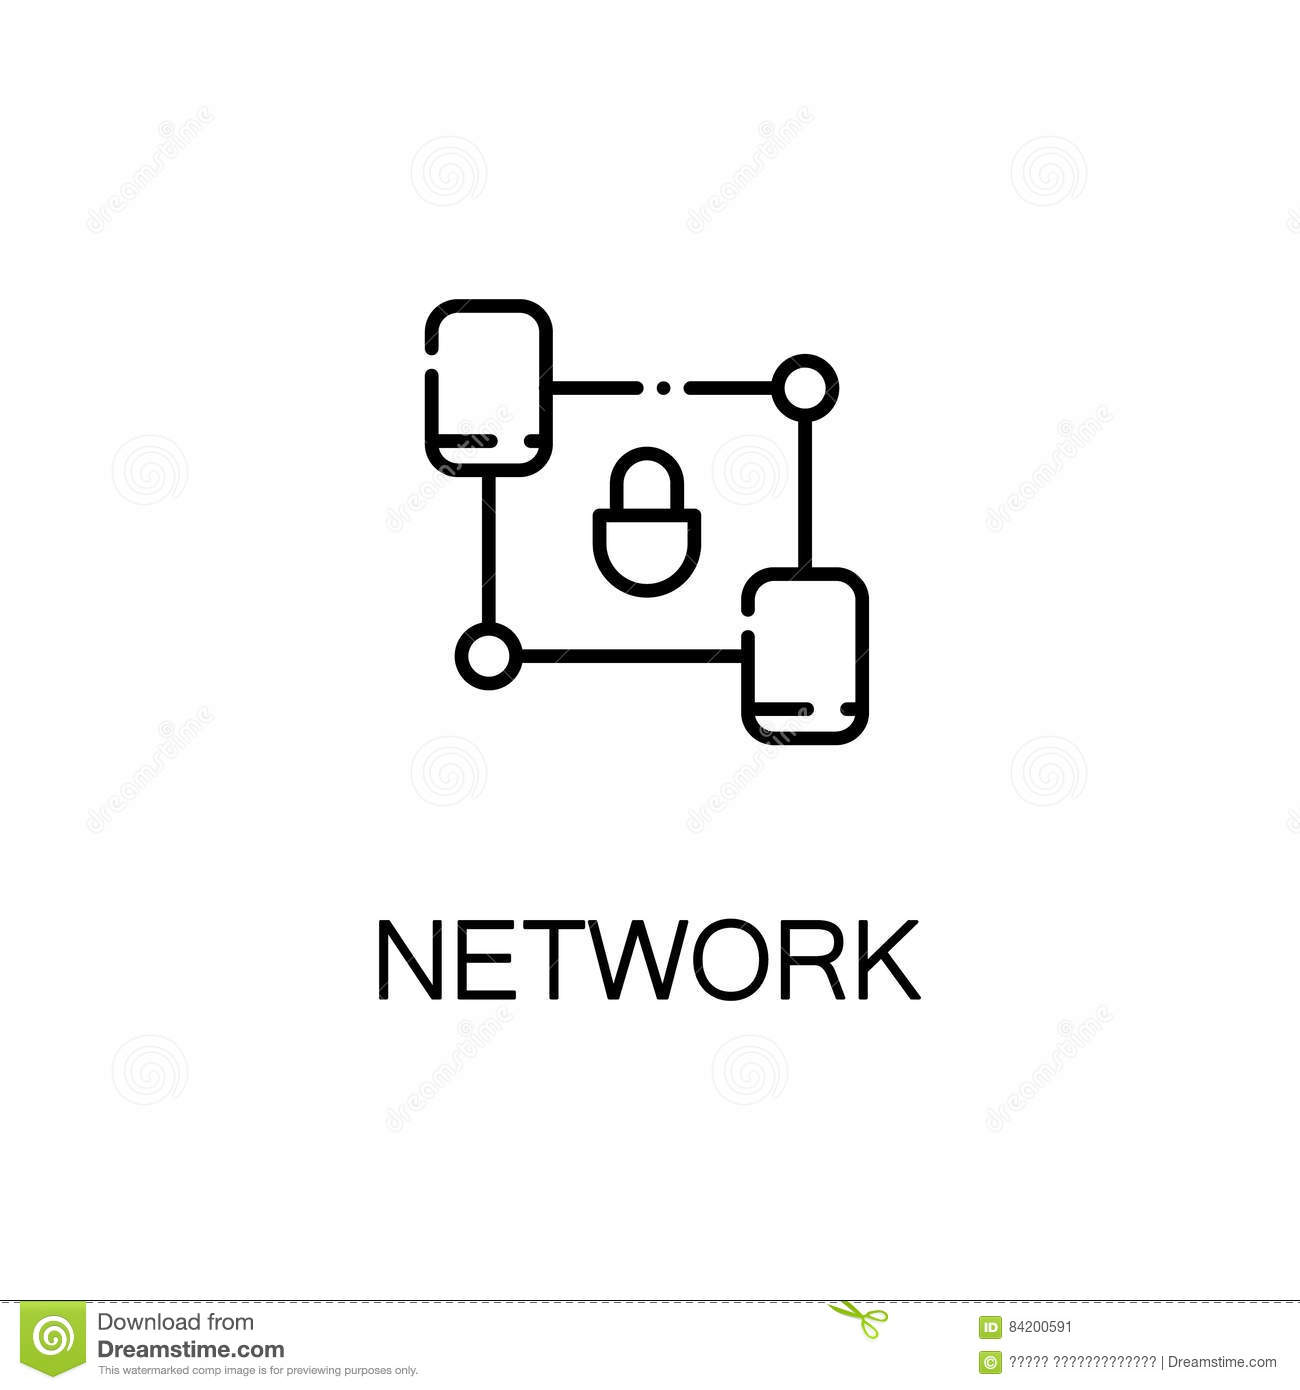 Network Line Icon Stock Vector Illustration Of Link 84200591